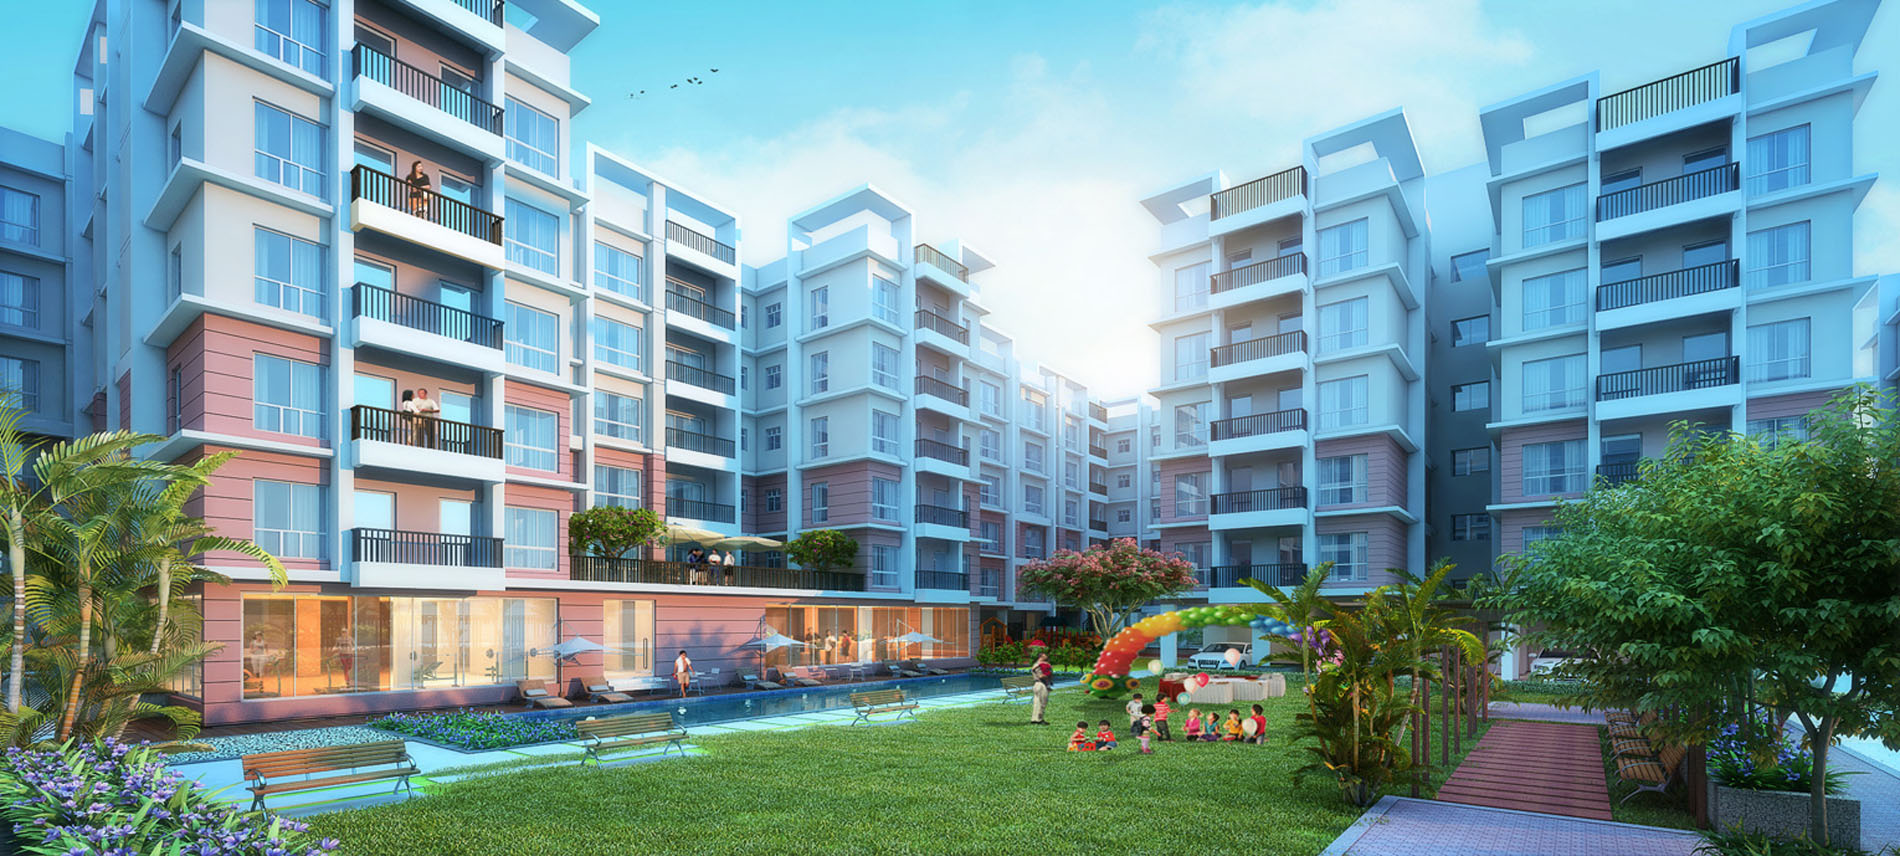 3 Bhk Apartments Residential Complex On Bt Road